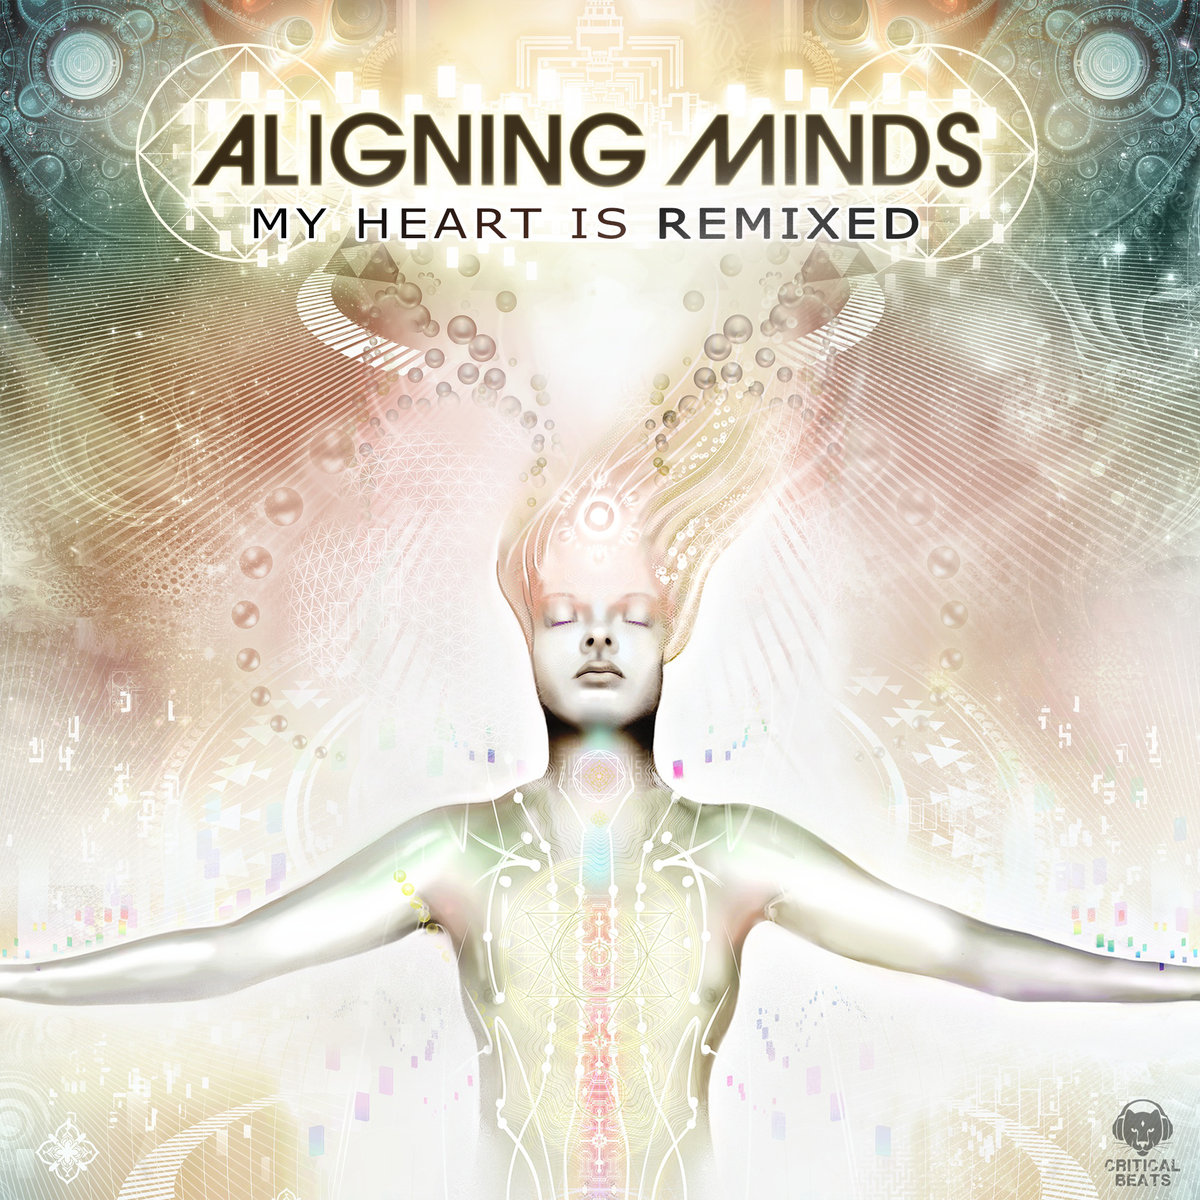 Aligning Minds - Ether Perfect (KiloWatts 'Total Blindness' Remix) @ 'My Heart Is Remixed' album (asheville, baltimore)